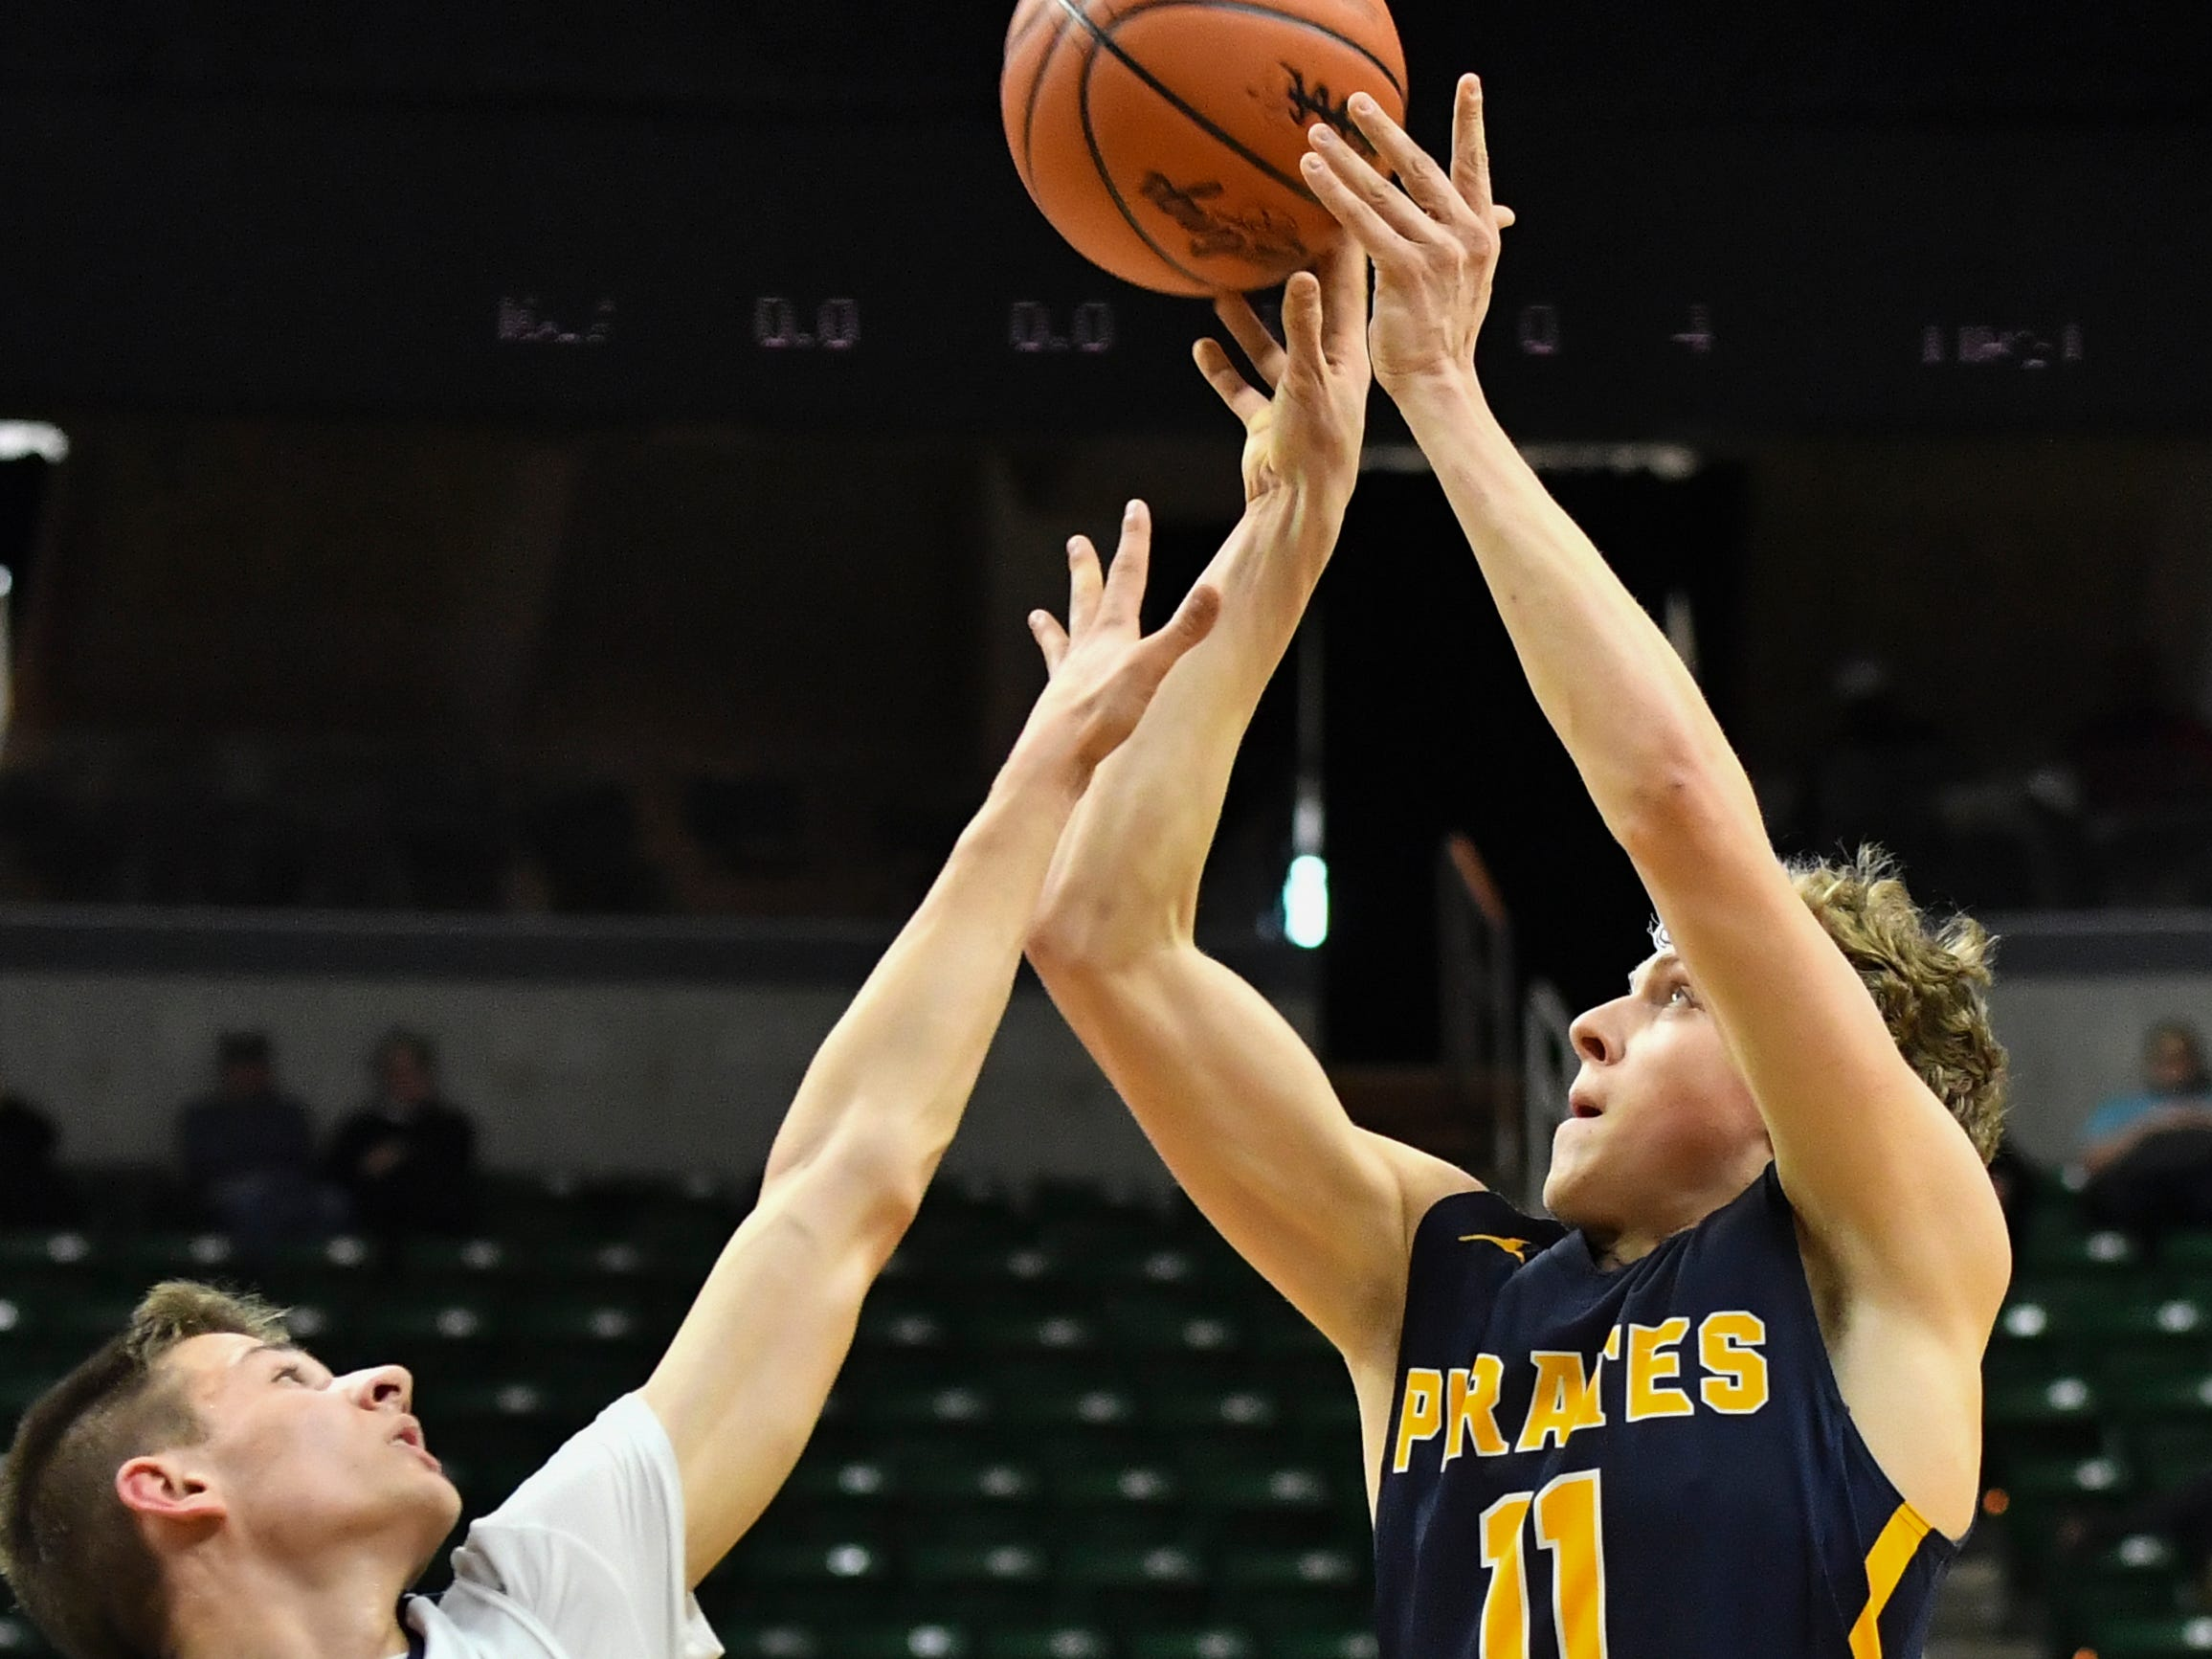 Collin Trierweiler of P-W shoots against Joe Liedel of Erie-Mason, Thursday, March 14, 2019, during the MHSAA Div. 3 state semifinal at the Breslin Center in East Lansing.   P-W earned a berth in the state final winning 60-45.